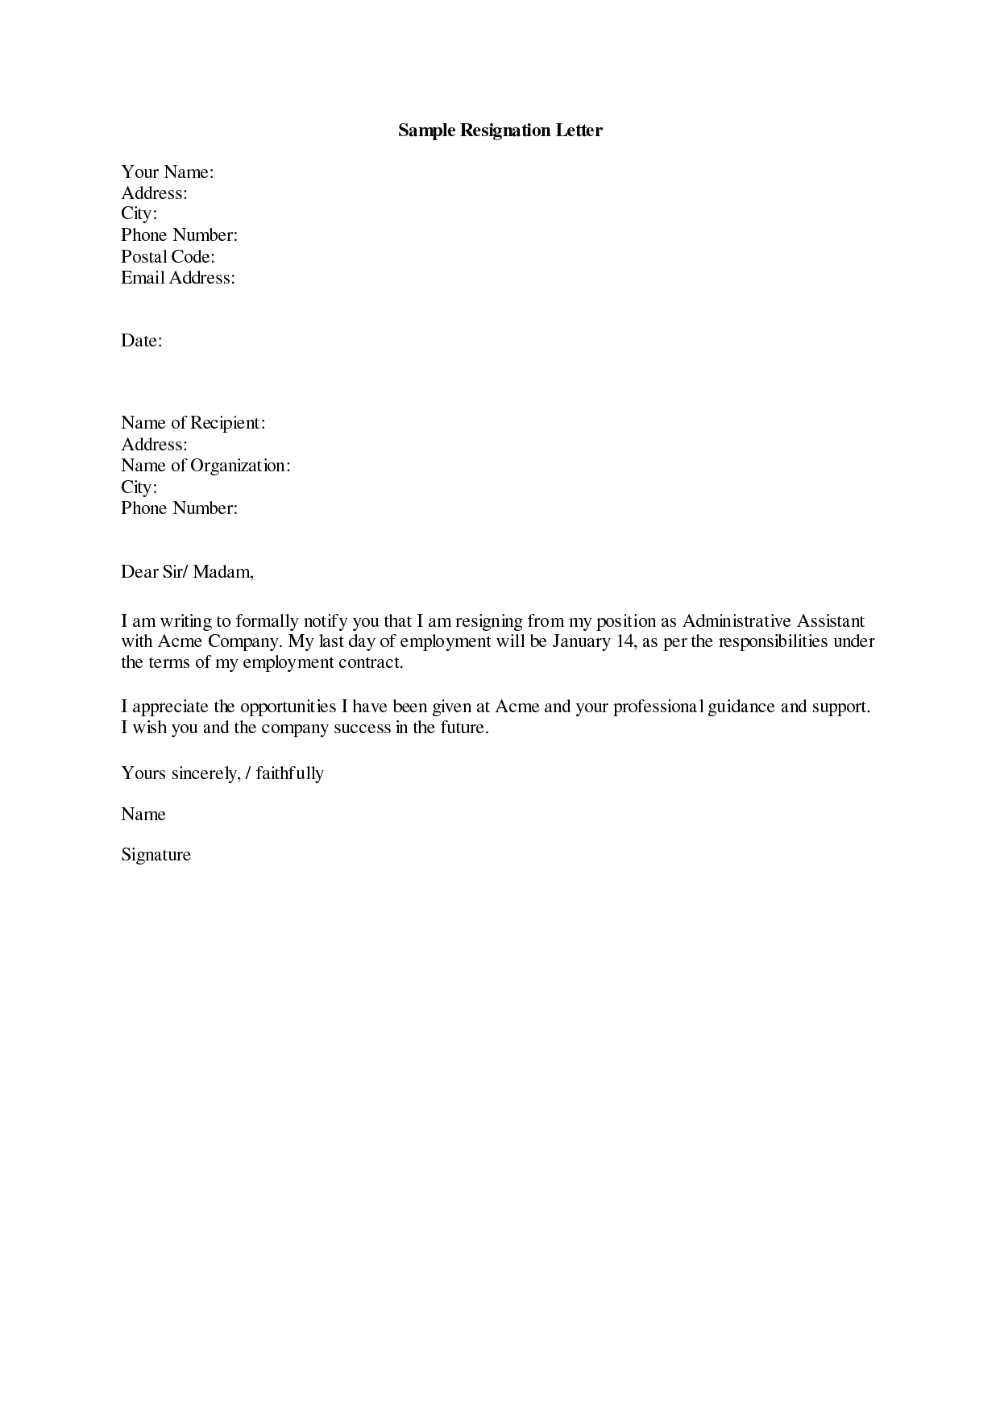 how to write a good resignation letter pertaining extracurricular activities in resume for freshers examples school teacher format pdf free digital marketing templates